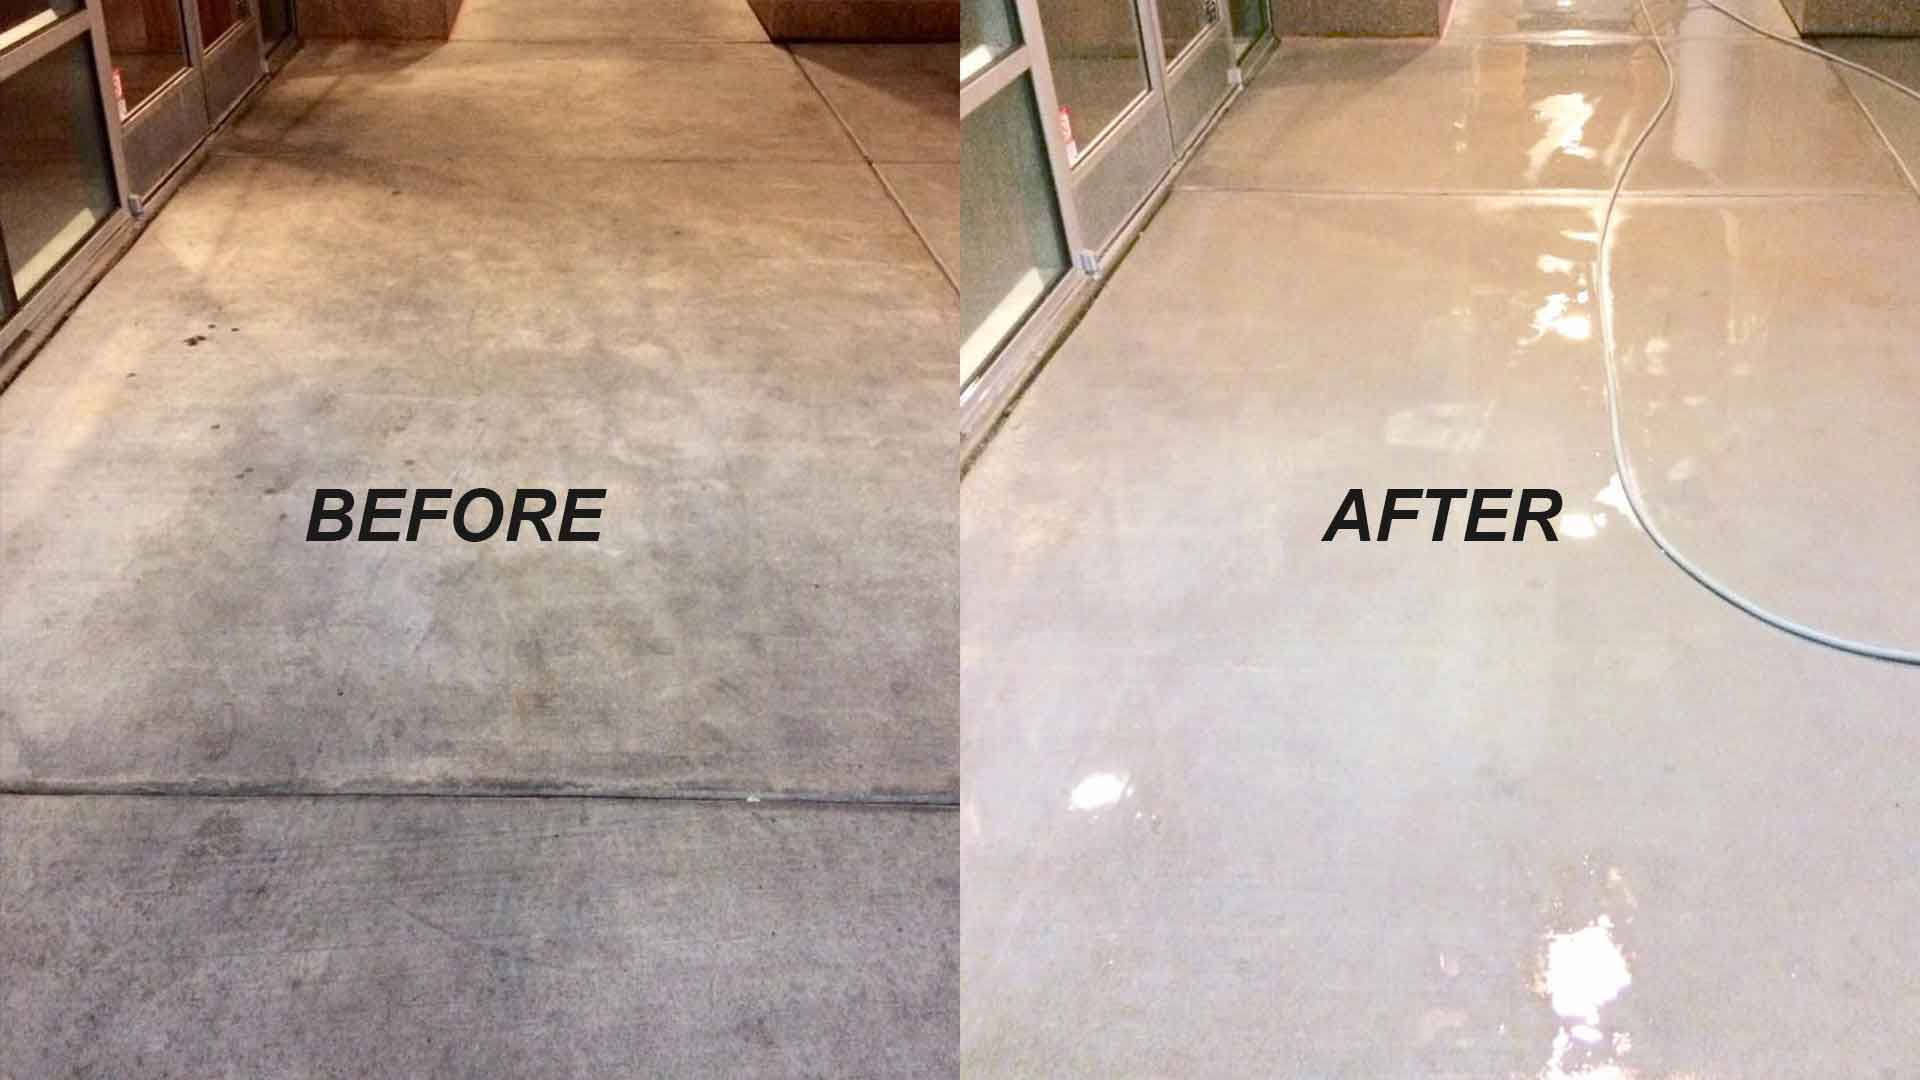 Wild West Surface Systems LLC Pressure Washing, Stain Removal and Graffiti Removal